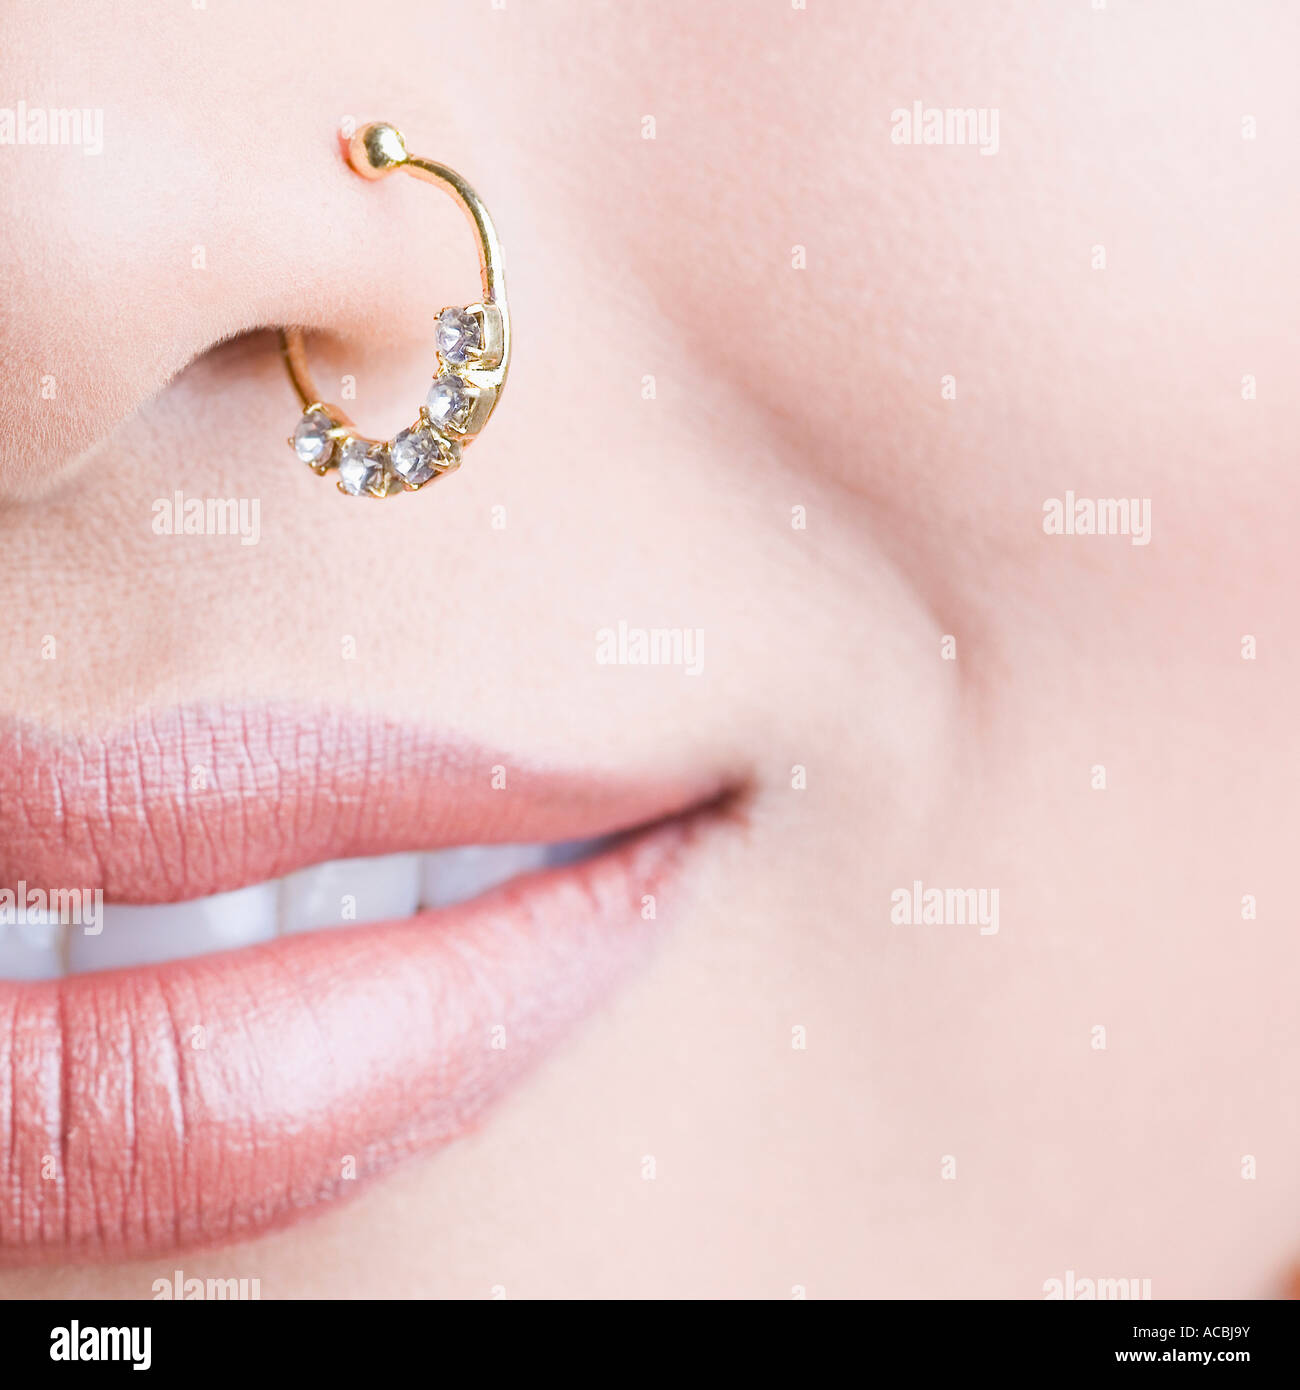 Close Up Of A Traditional Nose Ring On A Woman S Nose Stock Photo